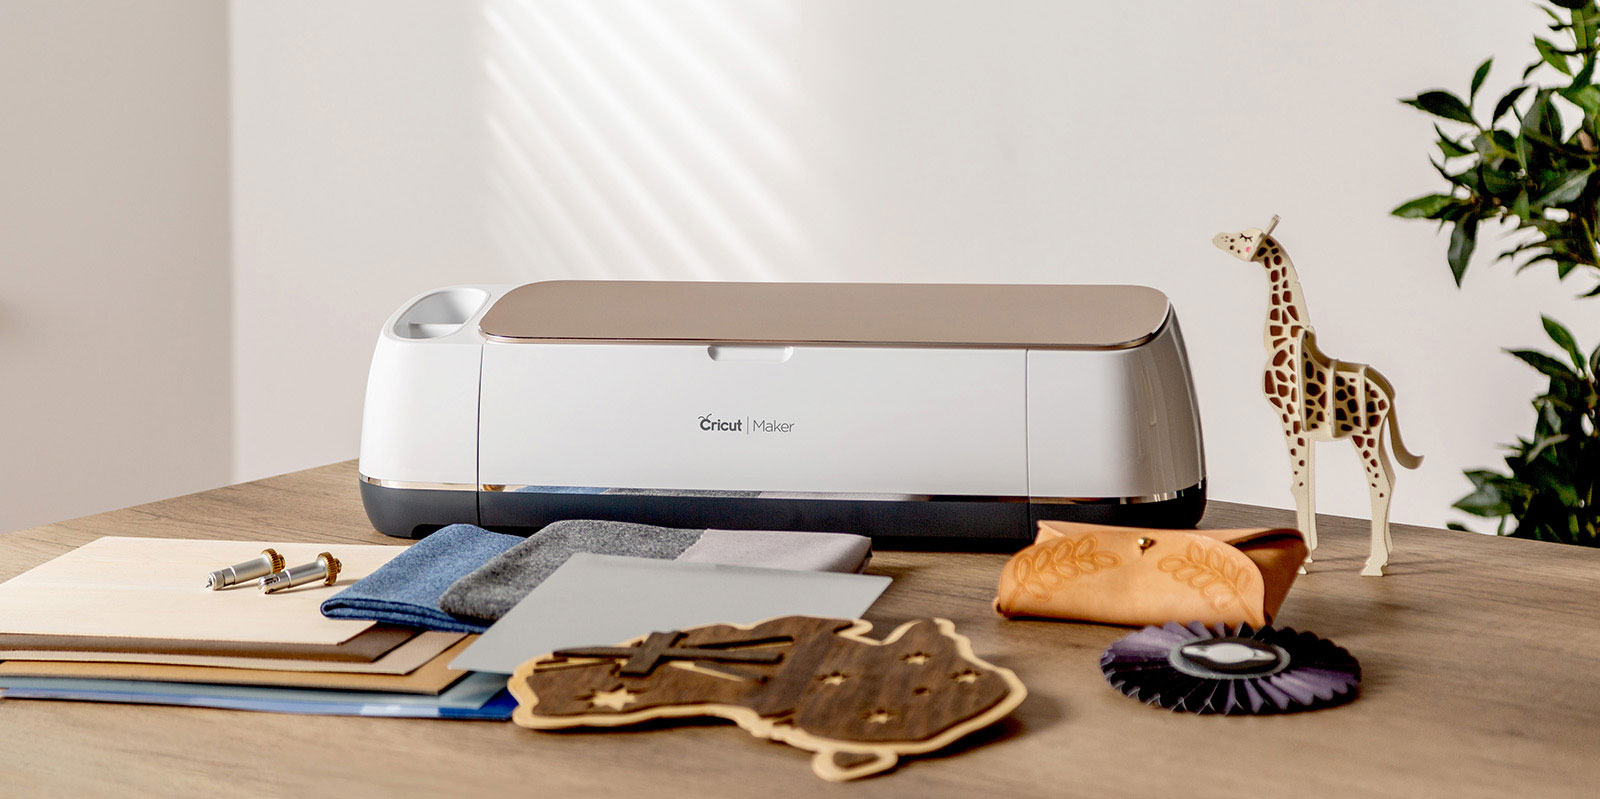 Machine Cricut Maker